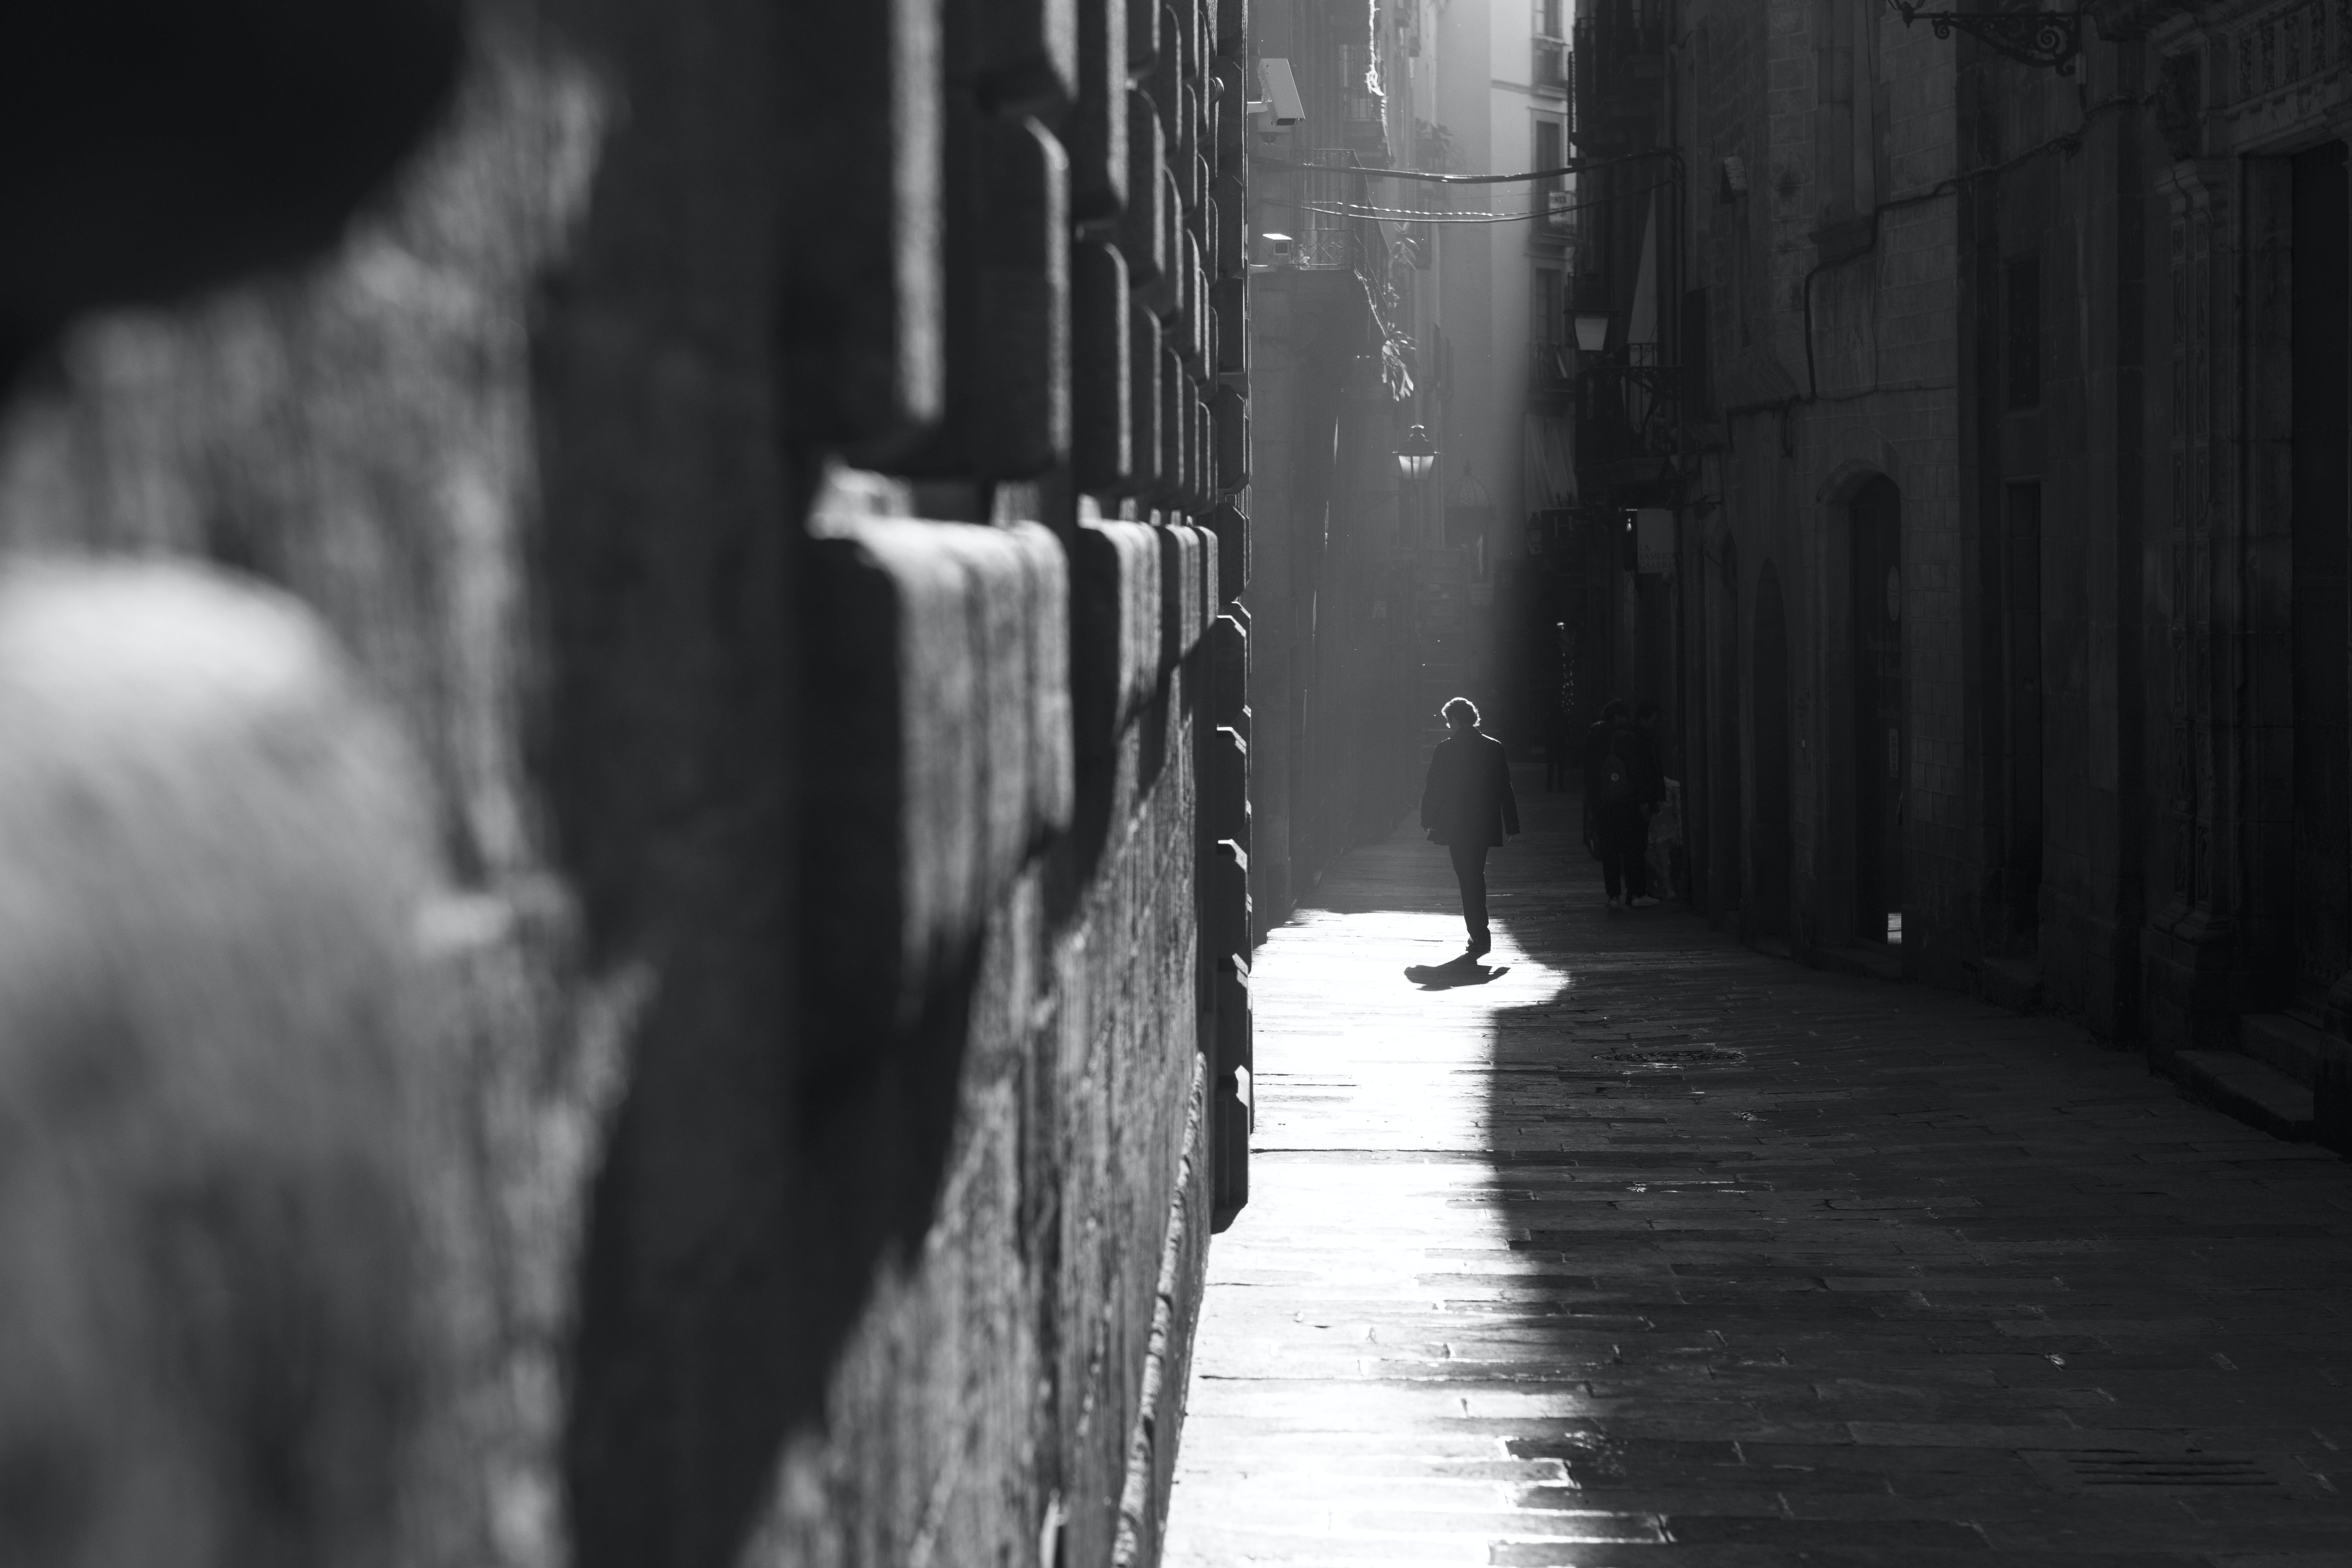 Person Walking in Alley in Grayscale Photography